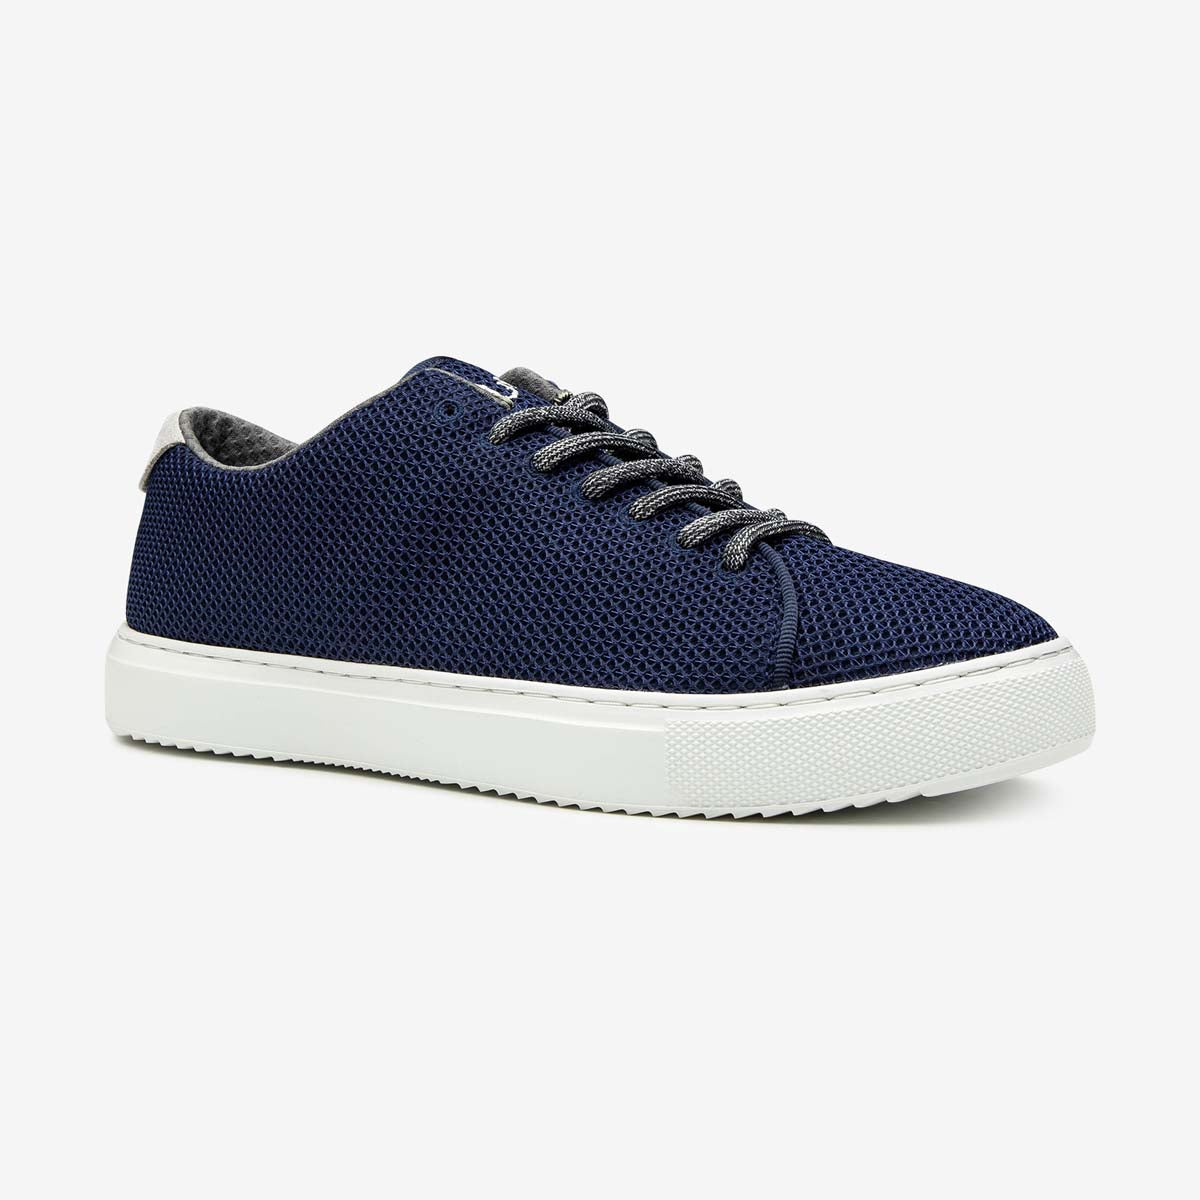 Up Pet's Cup - Navy - Pet